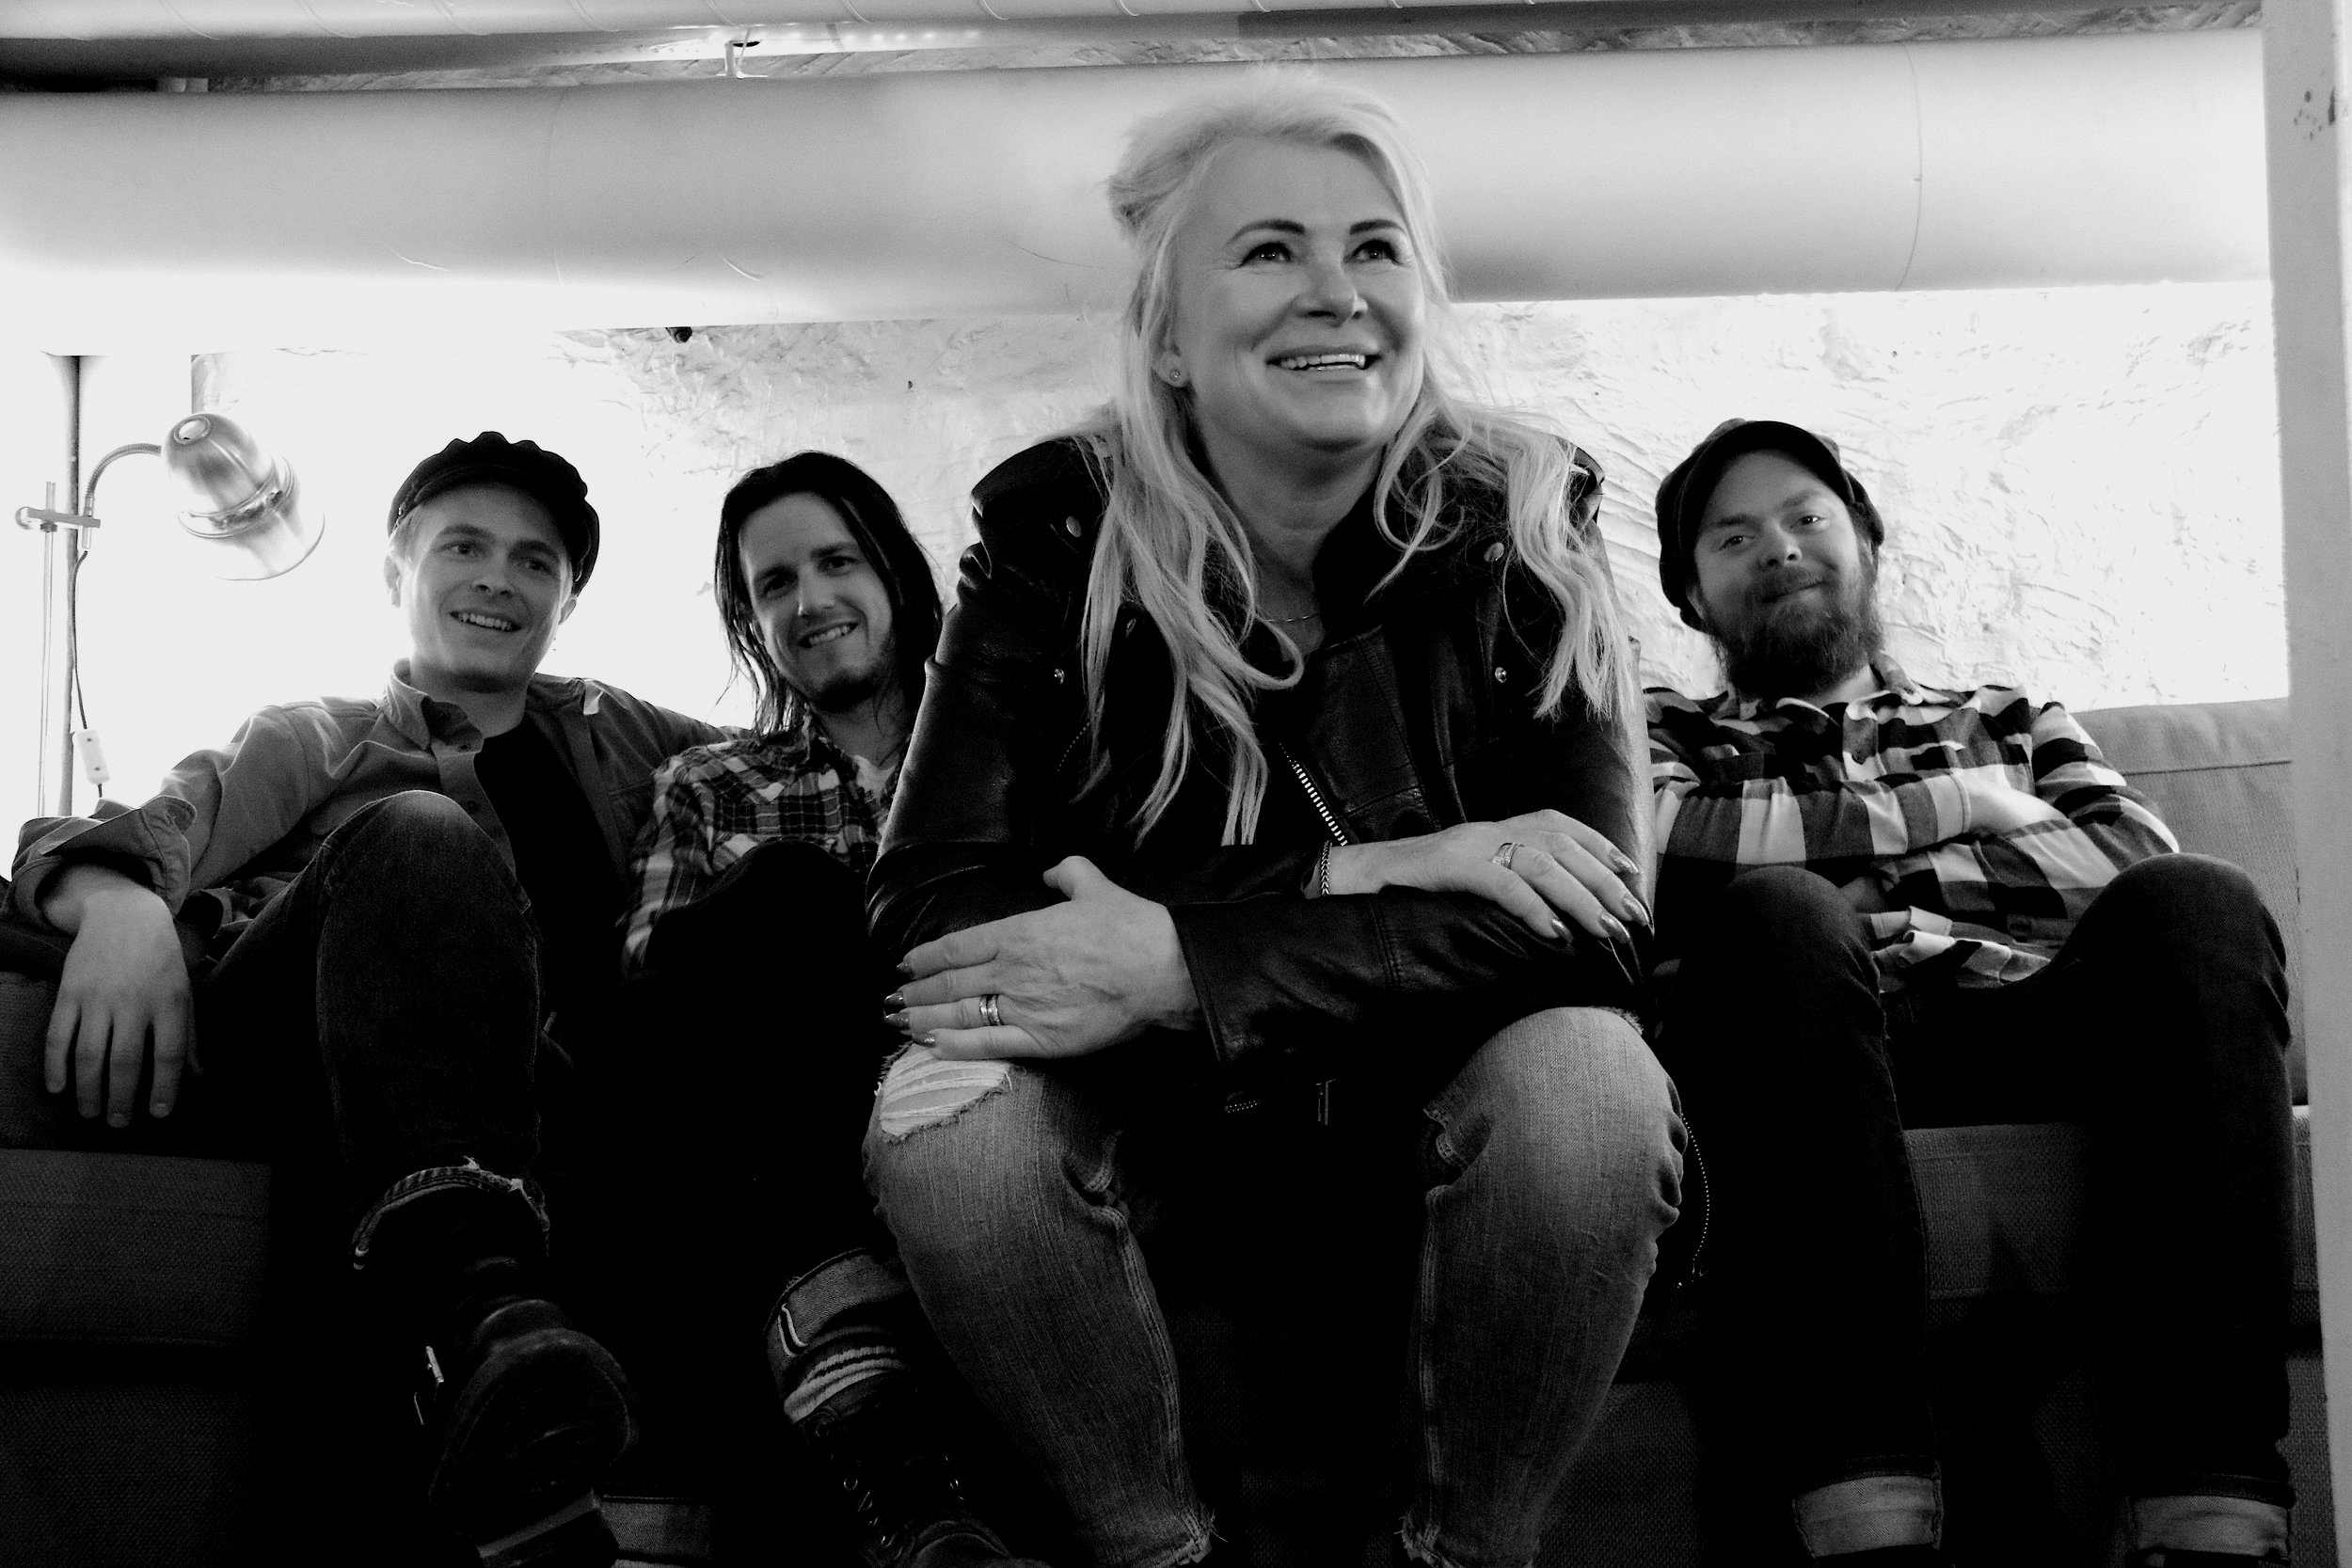 Annika & The Boiling Blues Band taking it easy at Studio Dubois Photo: LoEmma Nilsson